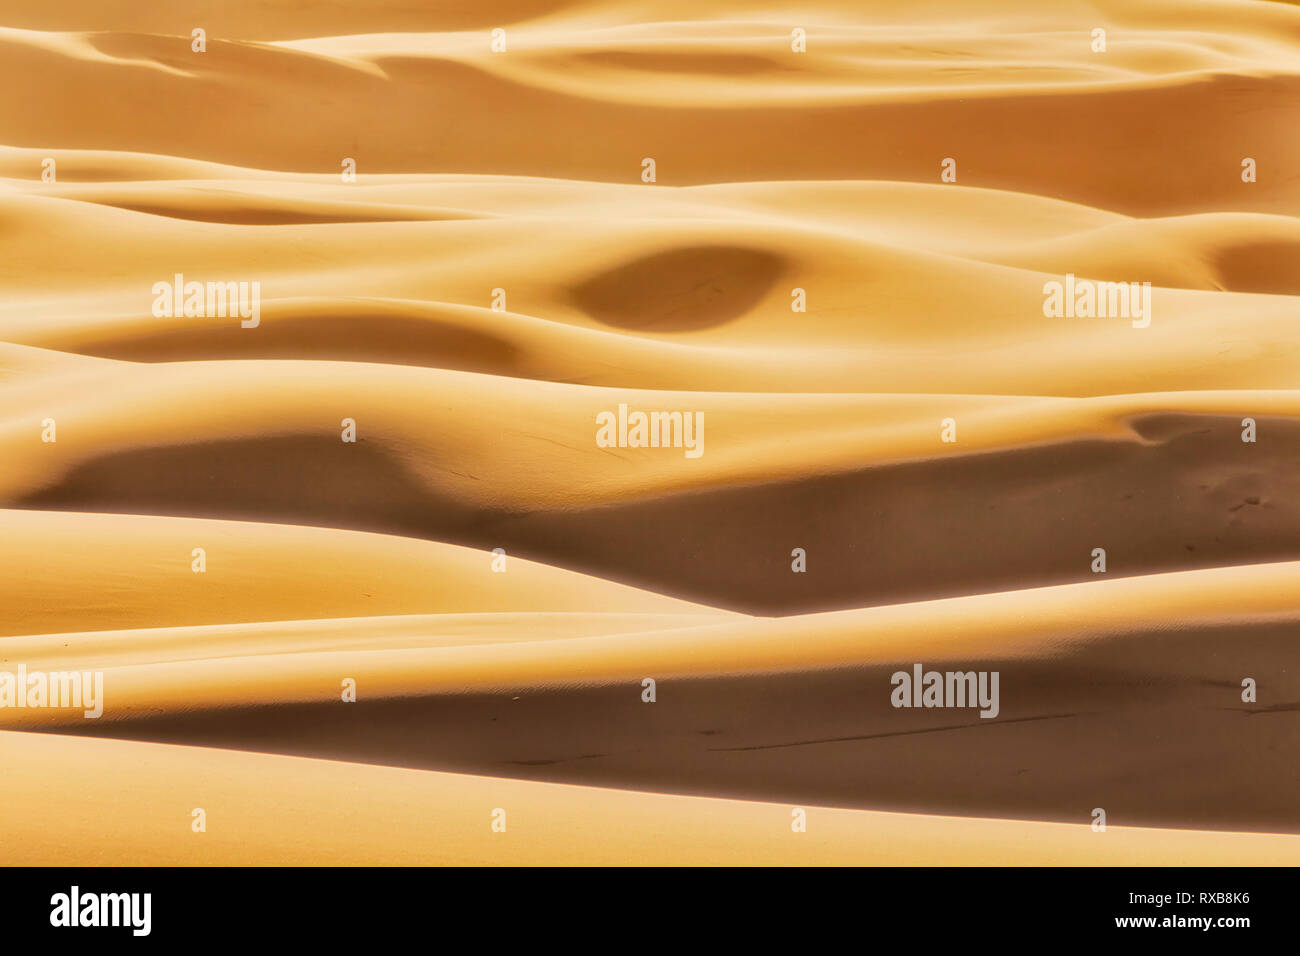 Simple shapes formed by sun light and shades on endless waves of sand dunes in arid lifeless desert of Australian Pacific coast at Stockton beach. - Stock Image